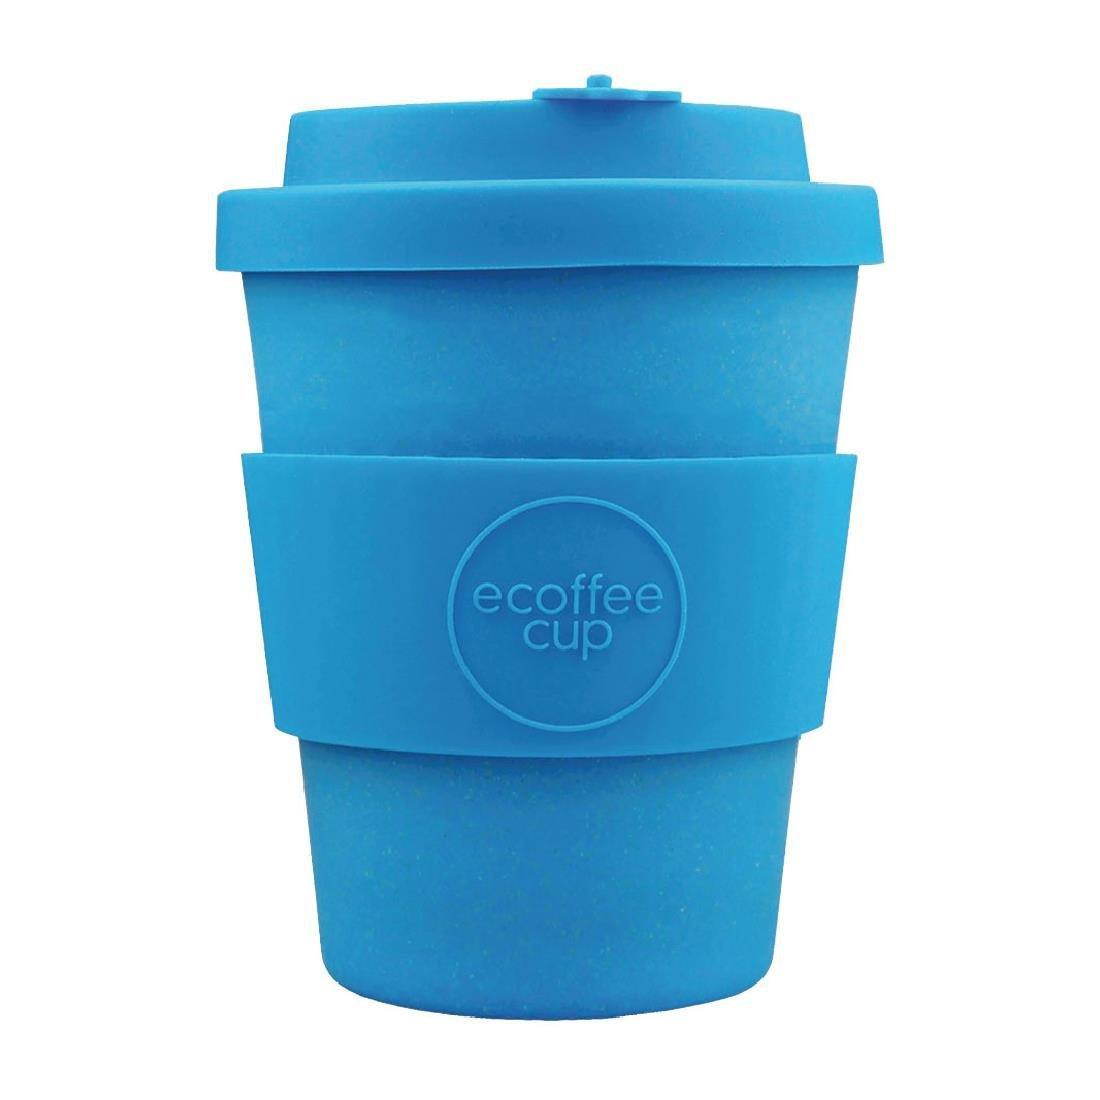 Ecoffee Cup Bamboo Reusable Coffee Cup Toroni Blue 12oz - Each - DY485